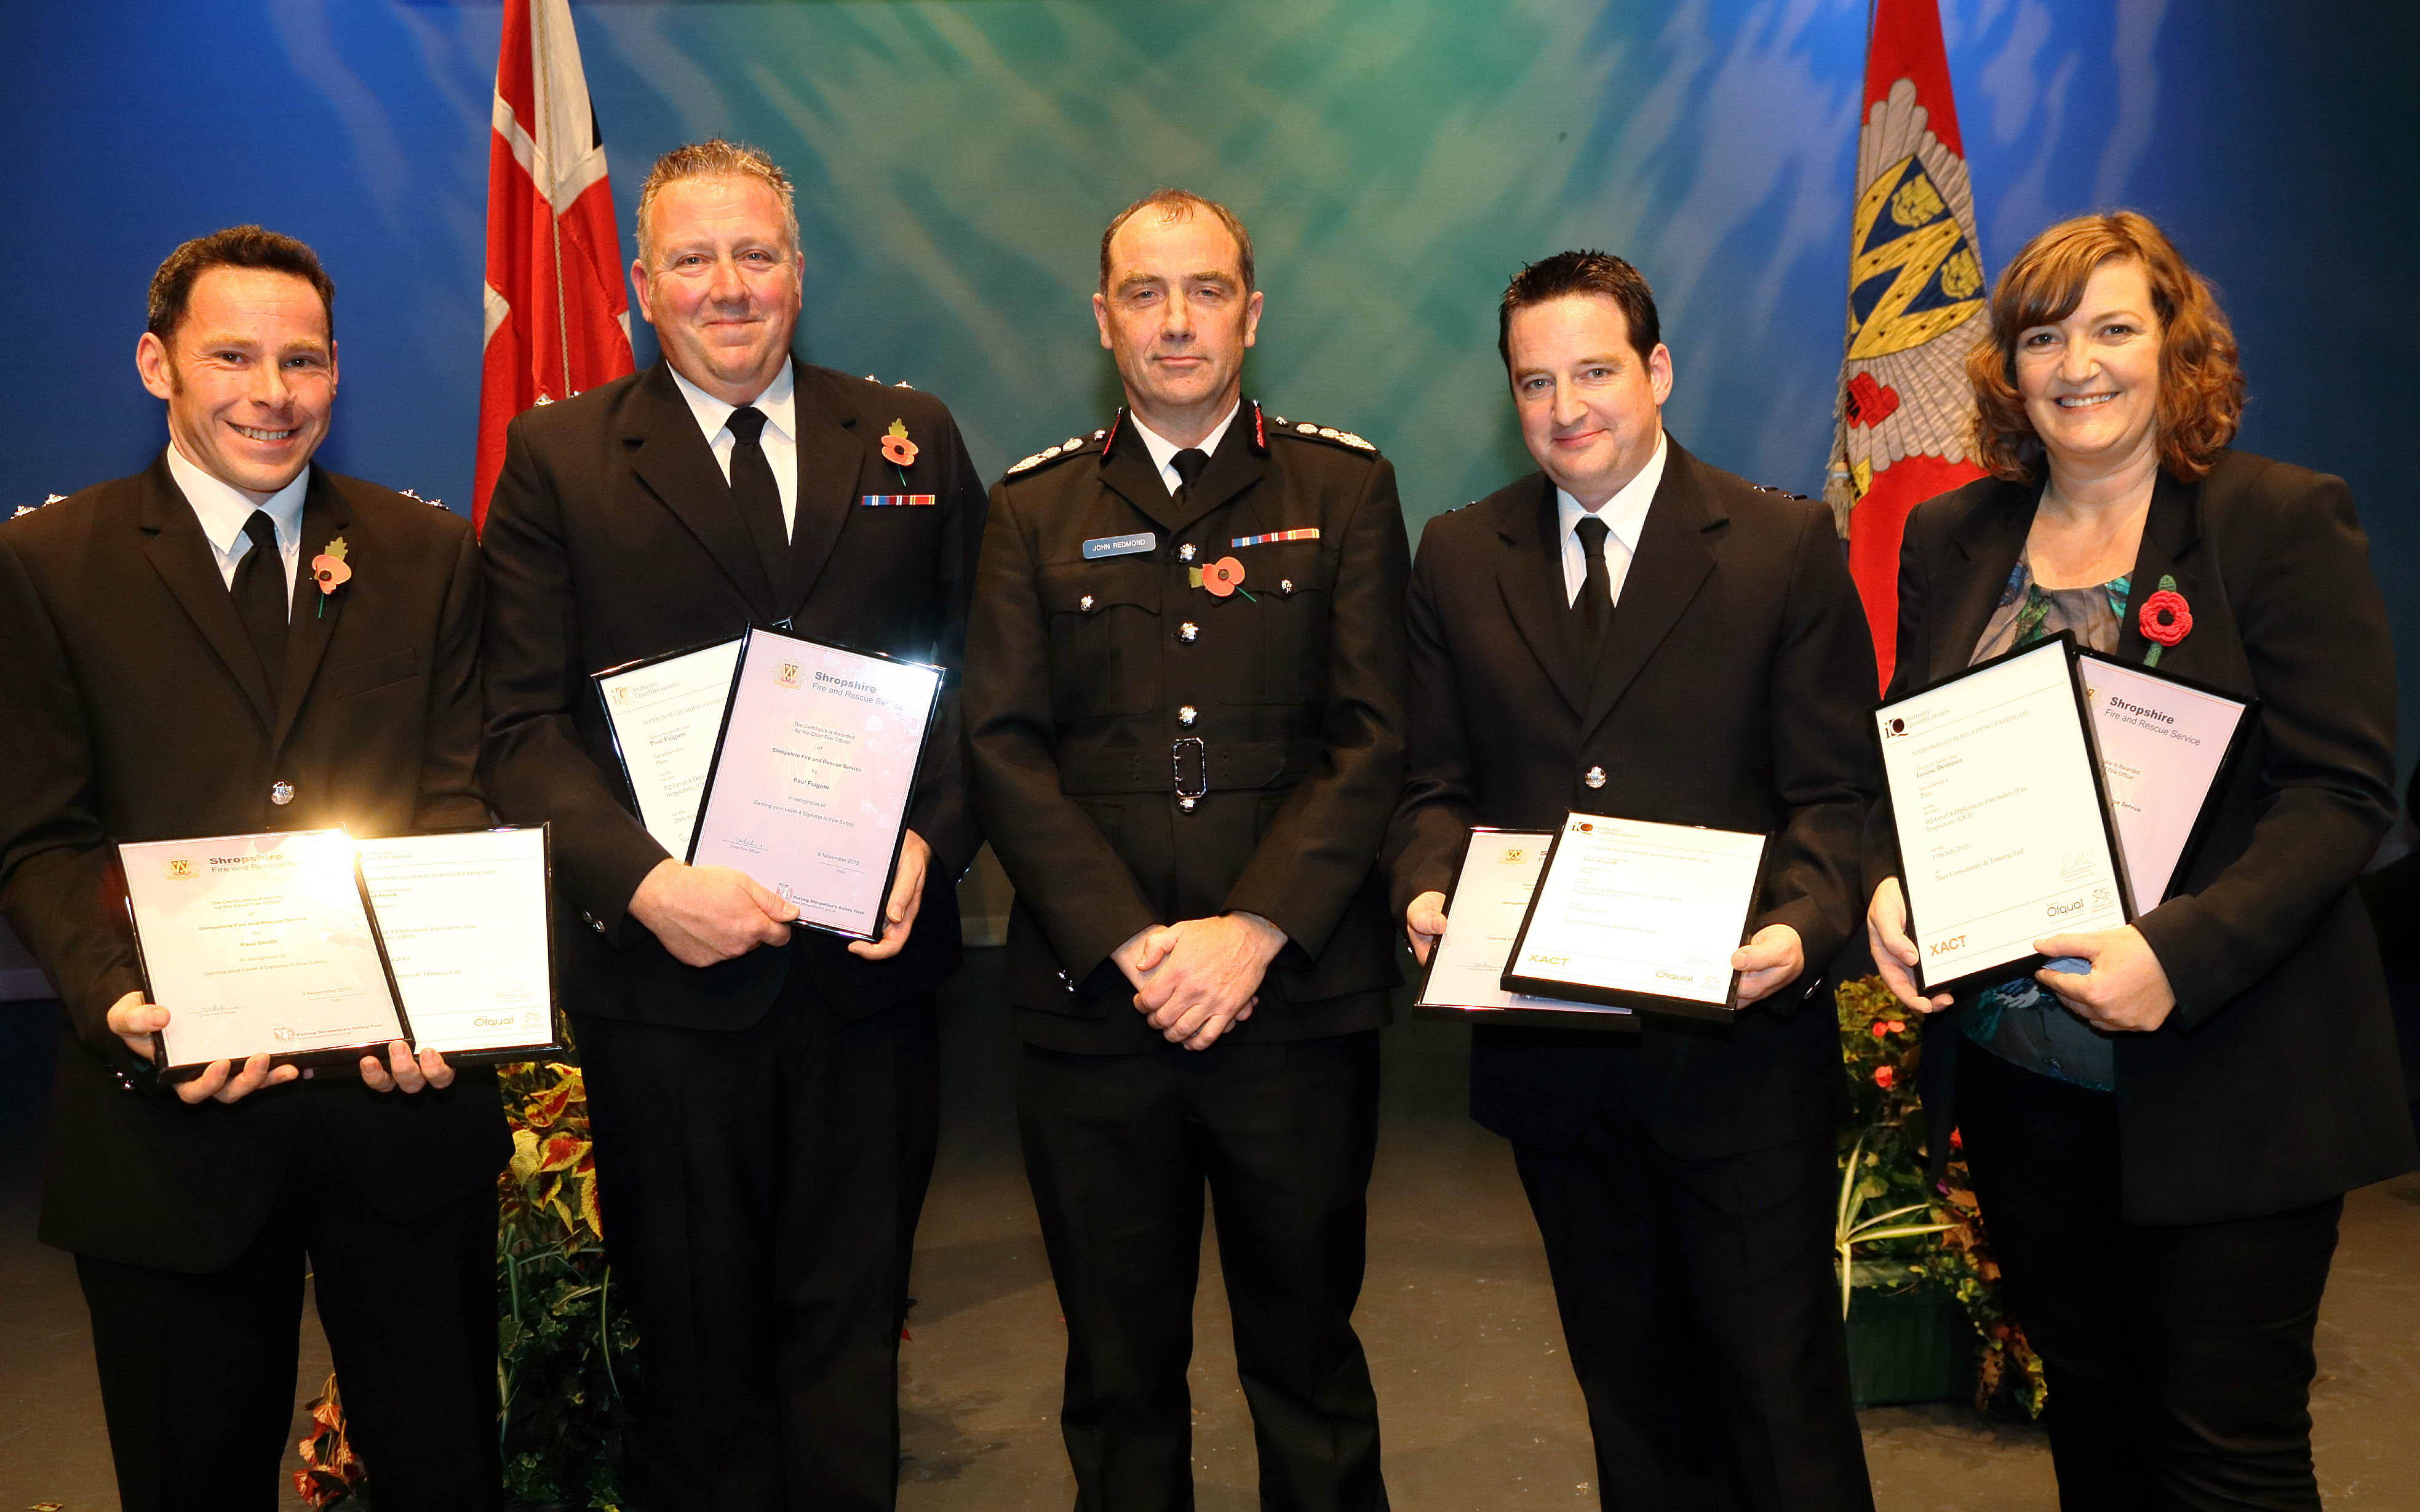 Paul Smith, Paul Fulgoni, Ceri Flavell, and Louise Derricutt, receive their awards.  Lynn Walker was unavailable to attend.